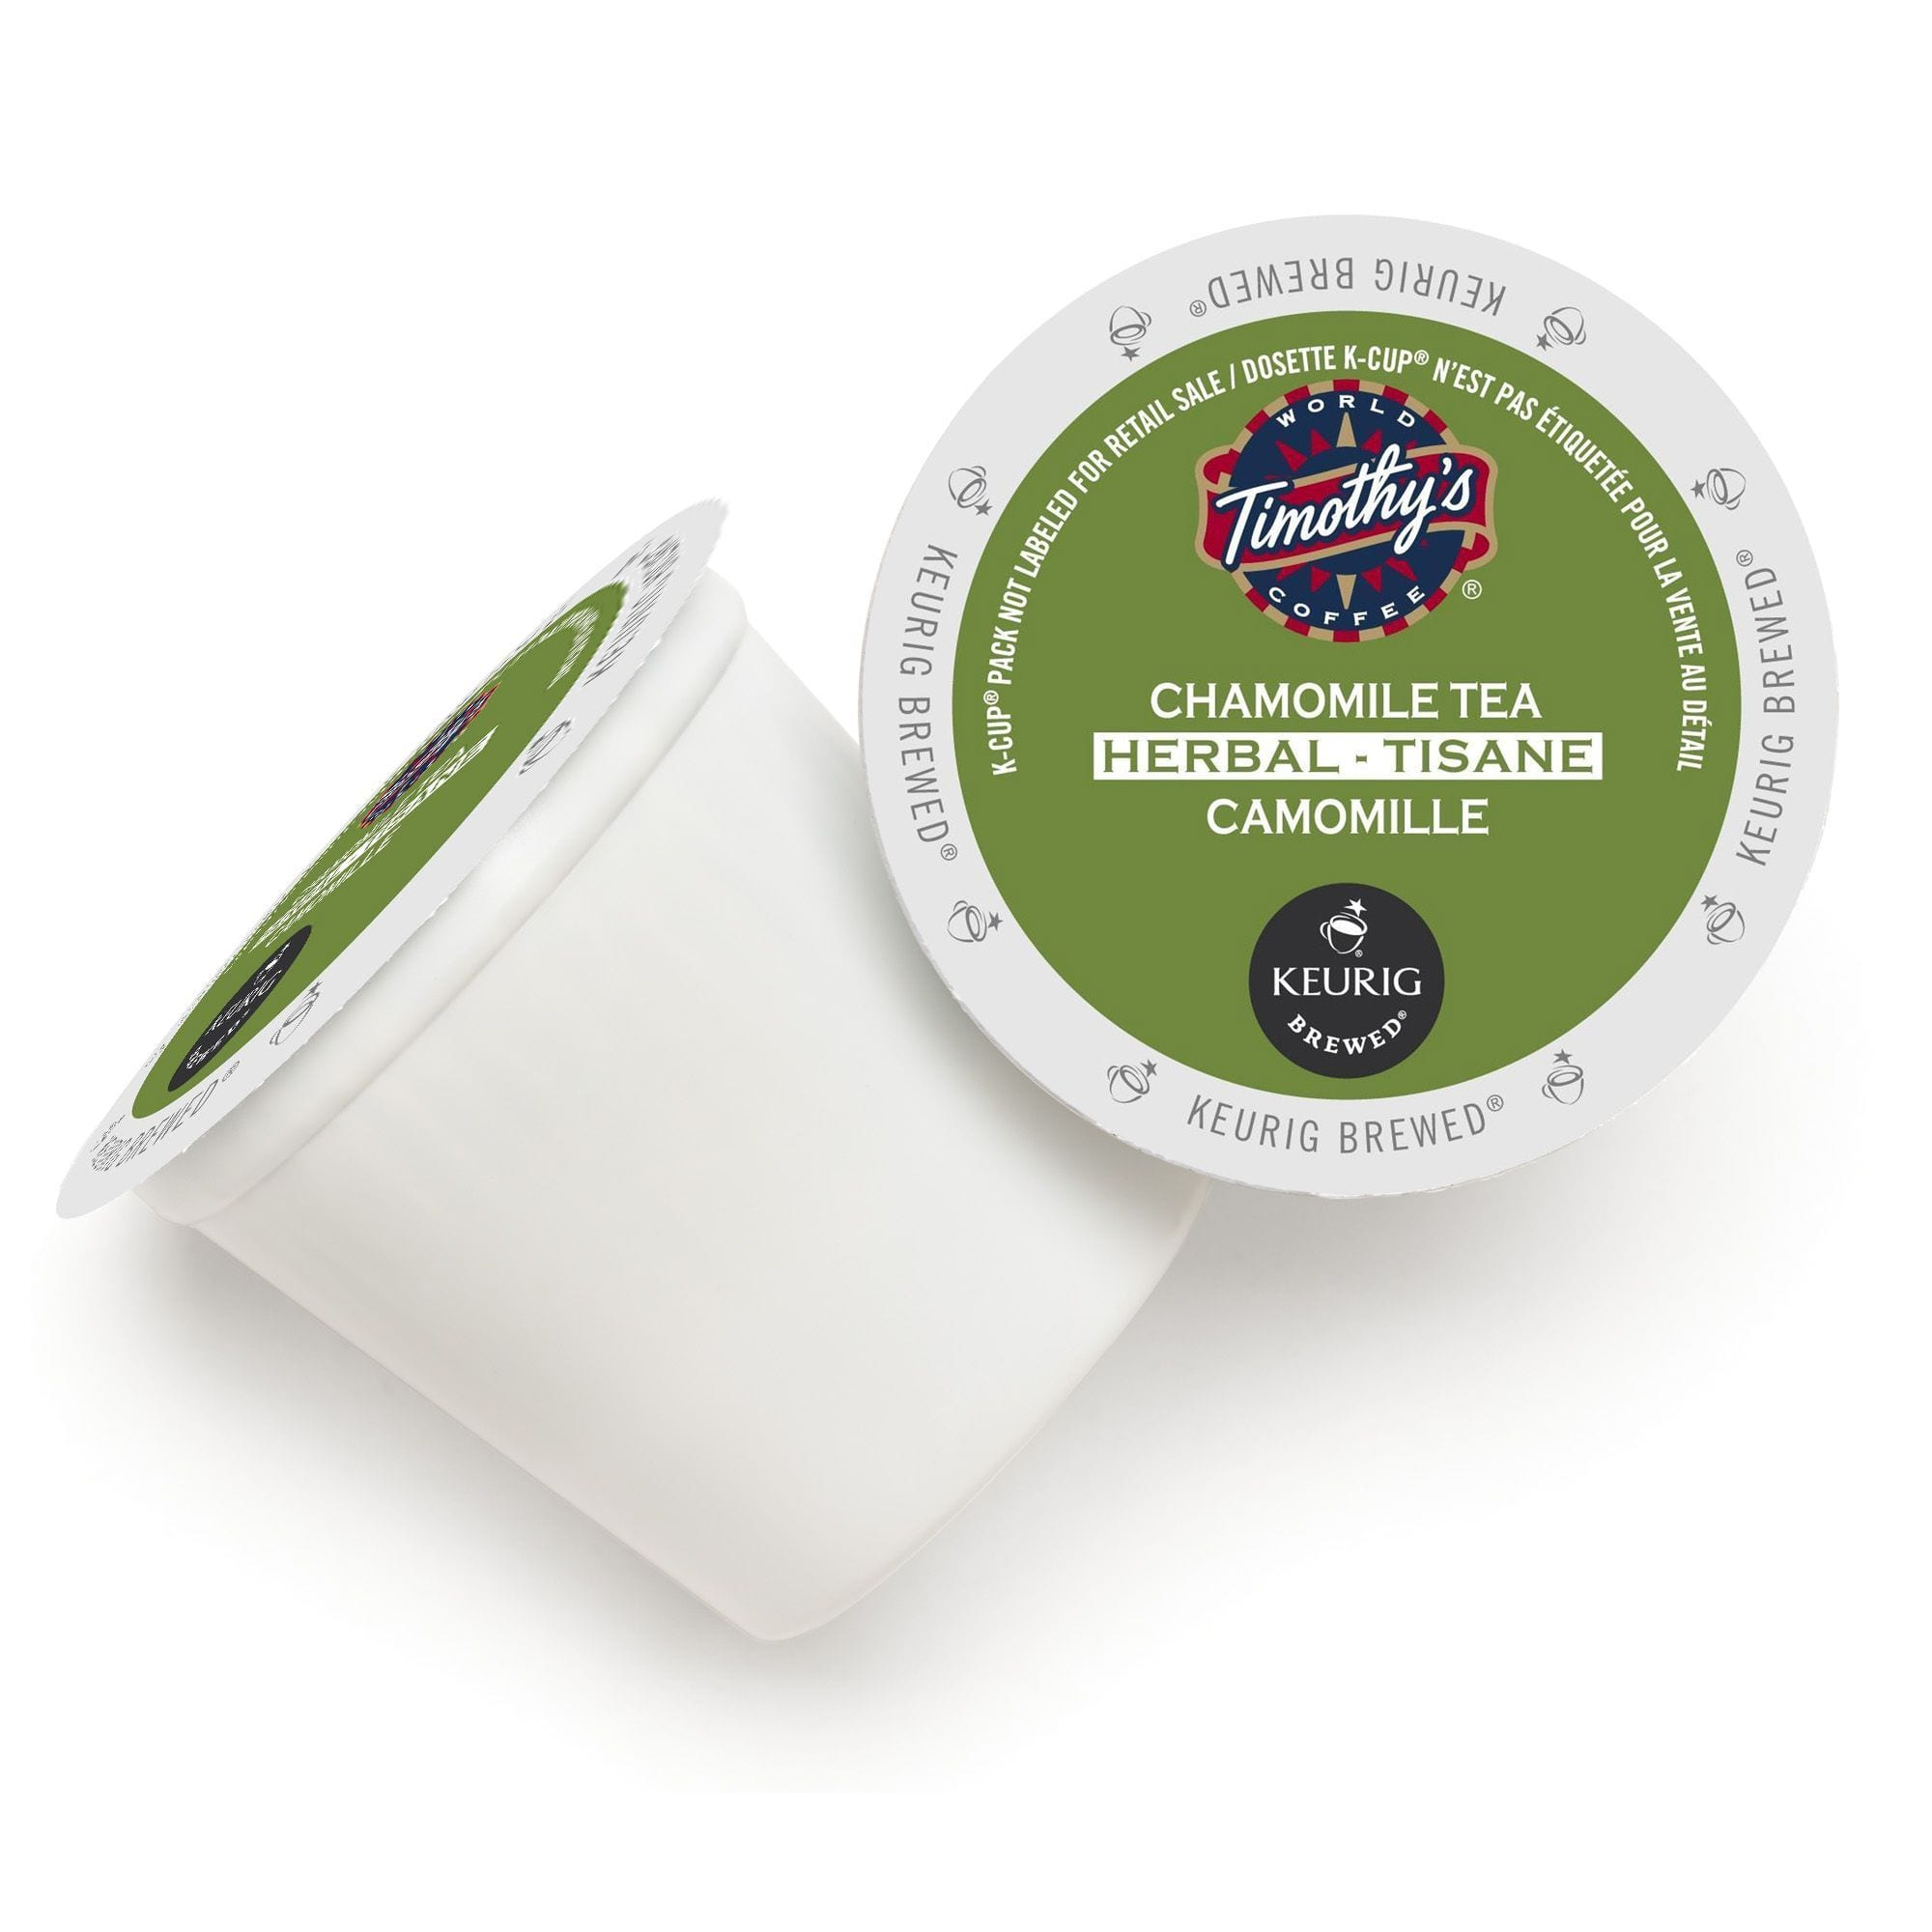 Timothy's Chamomile Tea, K-Cup Portion Pack for Keurig Brewers (24 Count)